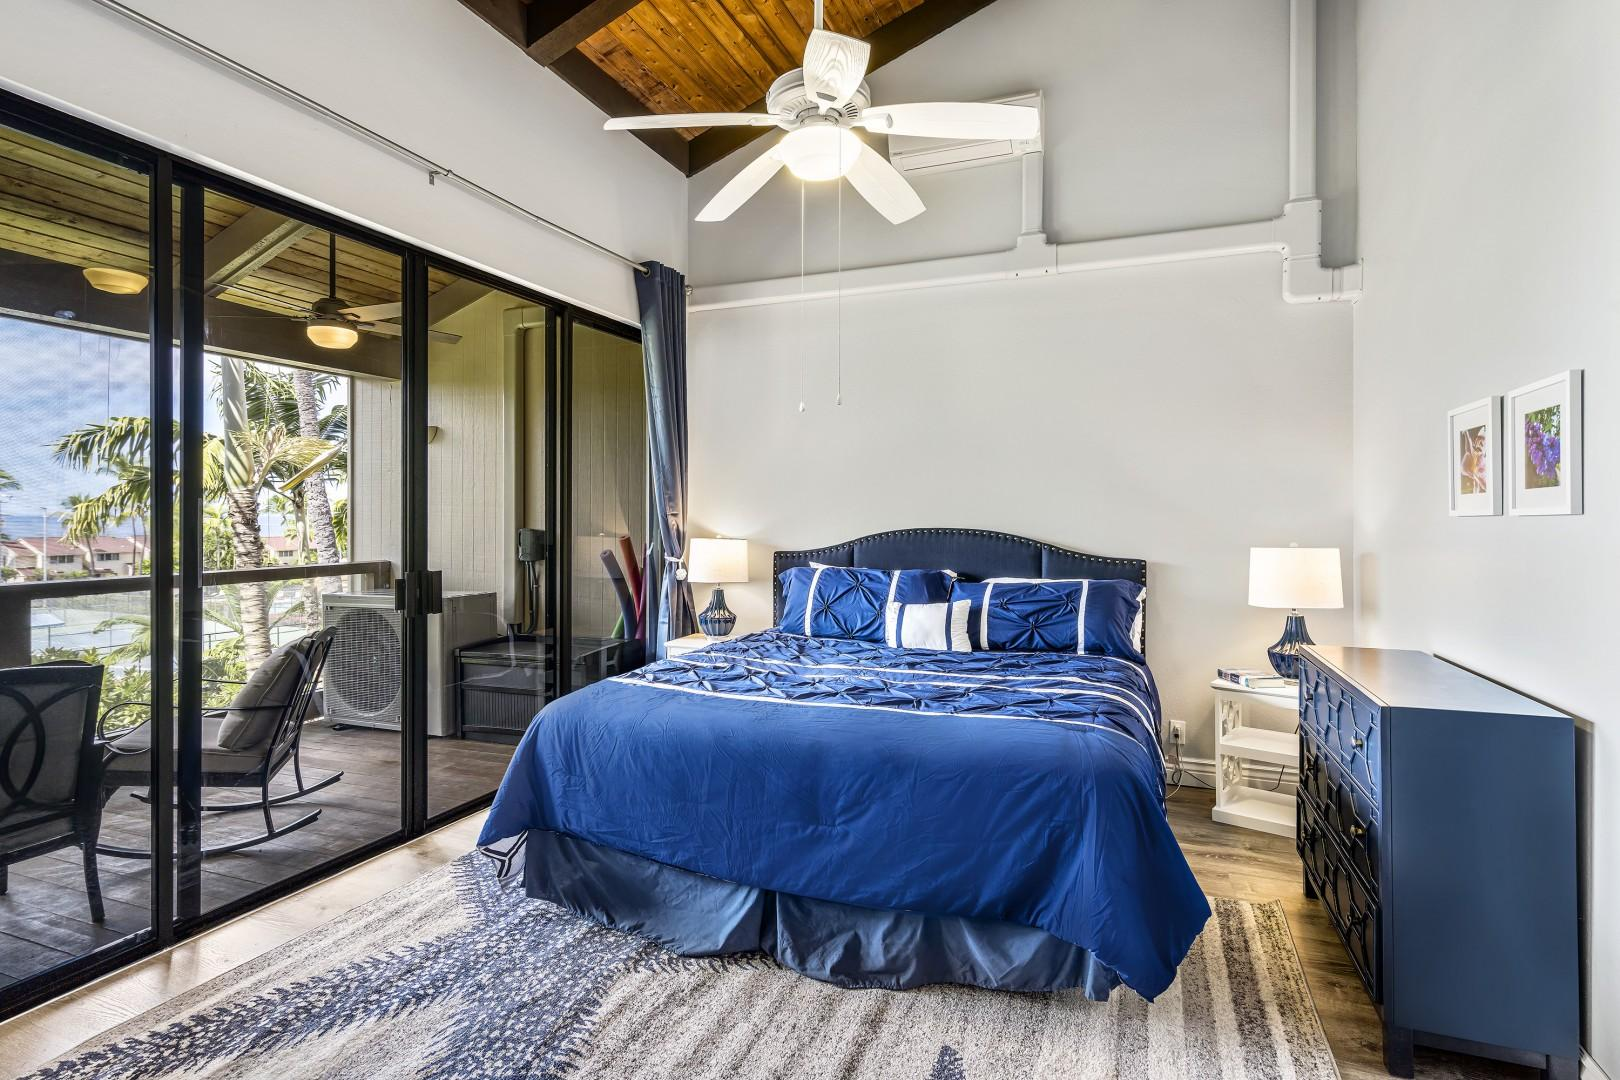 Master bedroom with King bed, A/C, Ocean view, ensuite, and Lanai access!